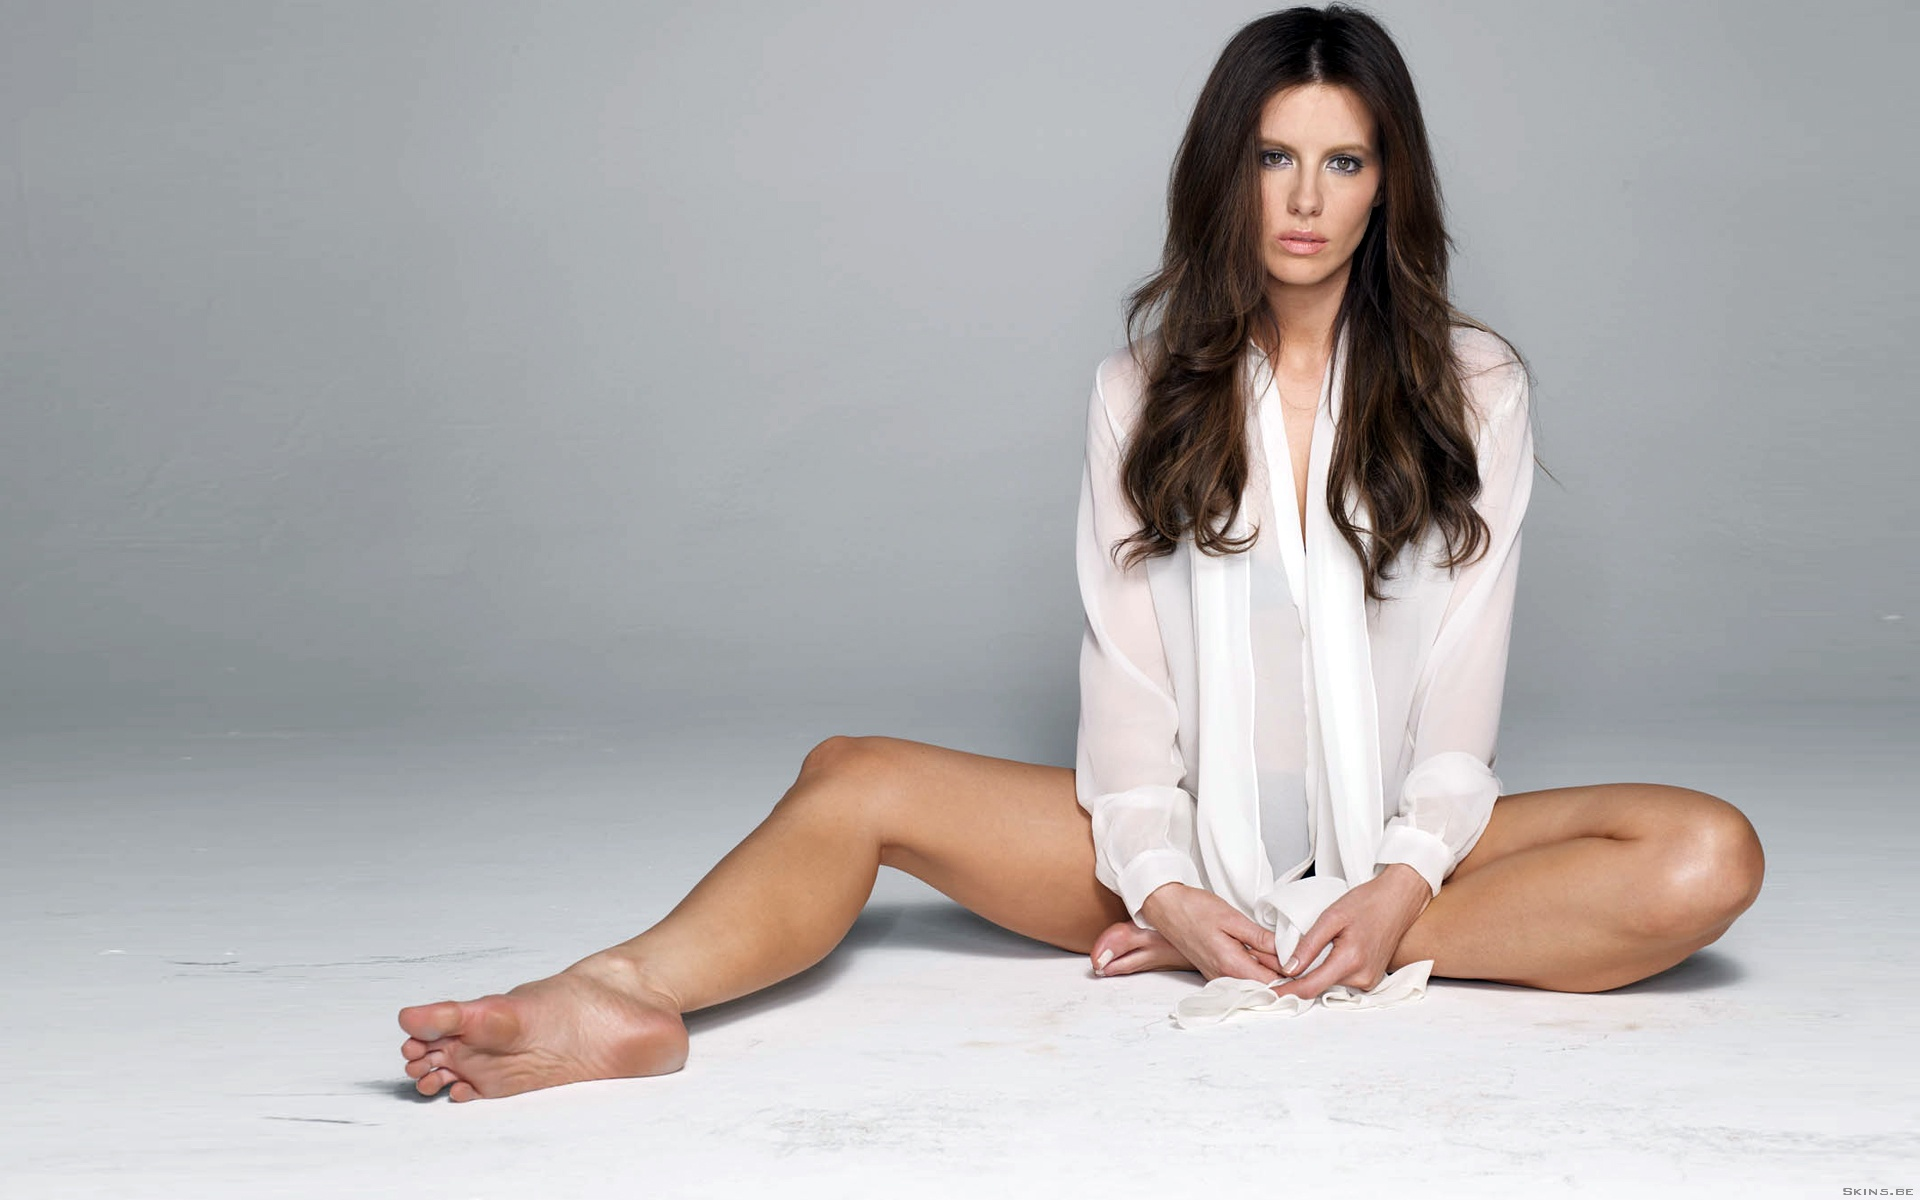 Kate Beckinsale Feet 1920x1200